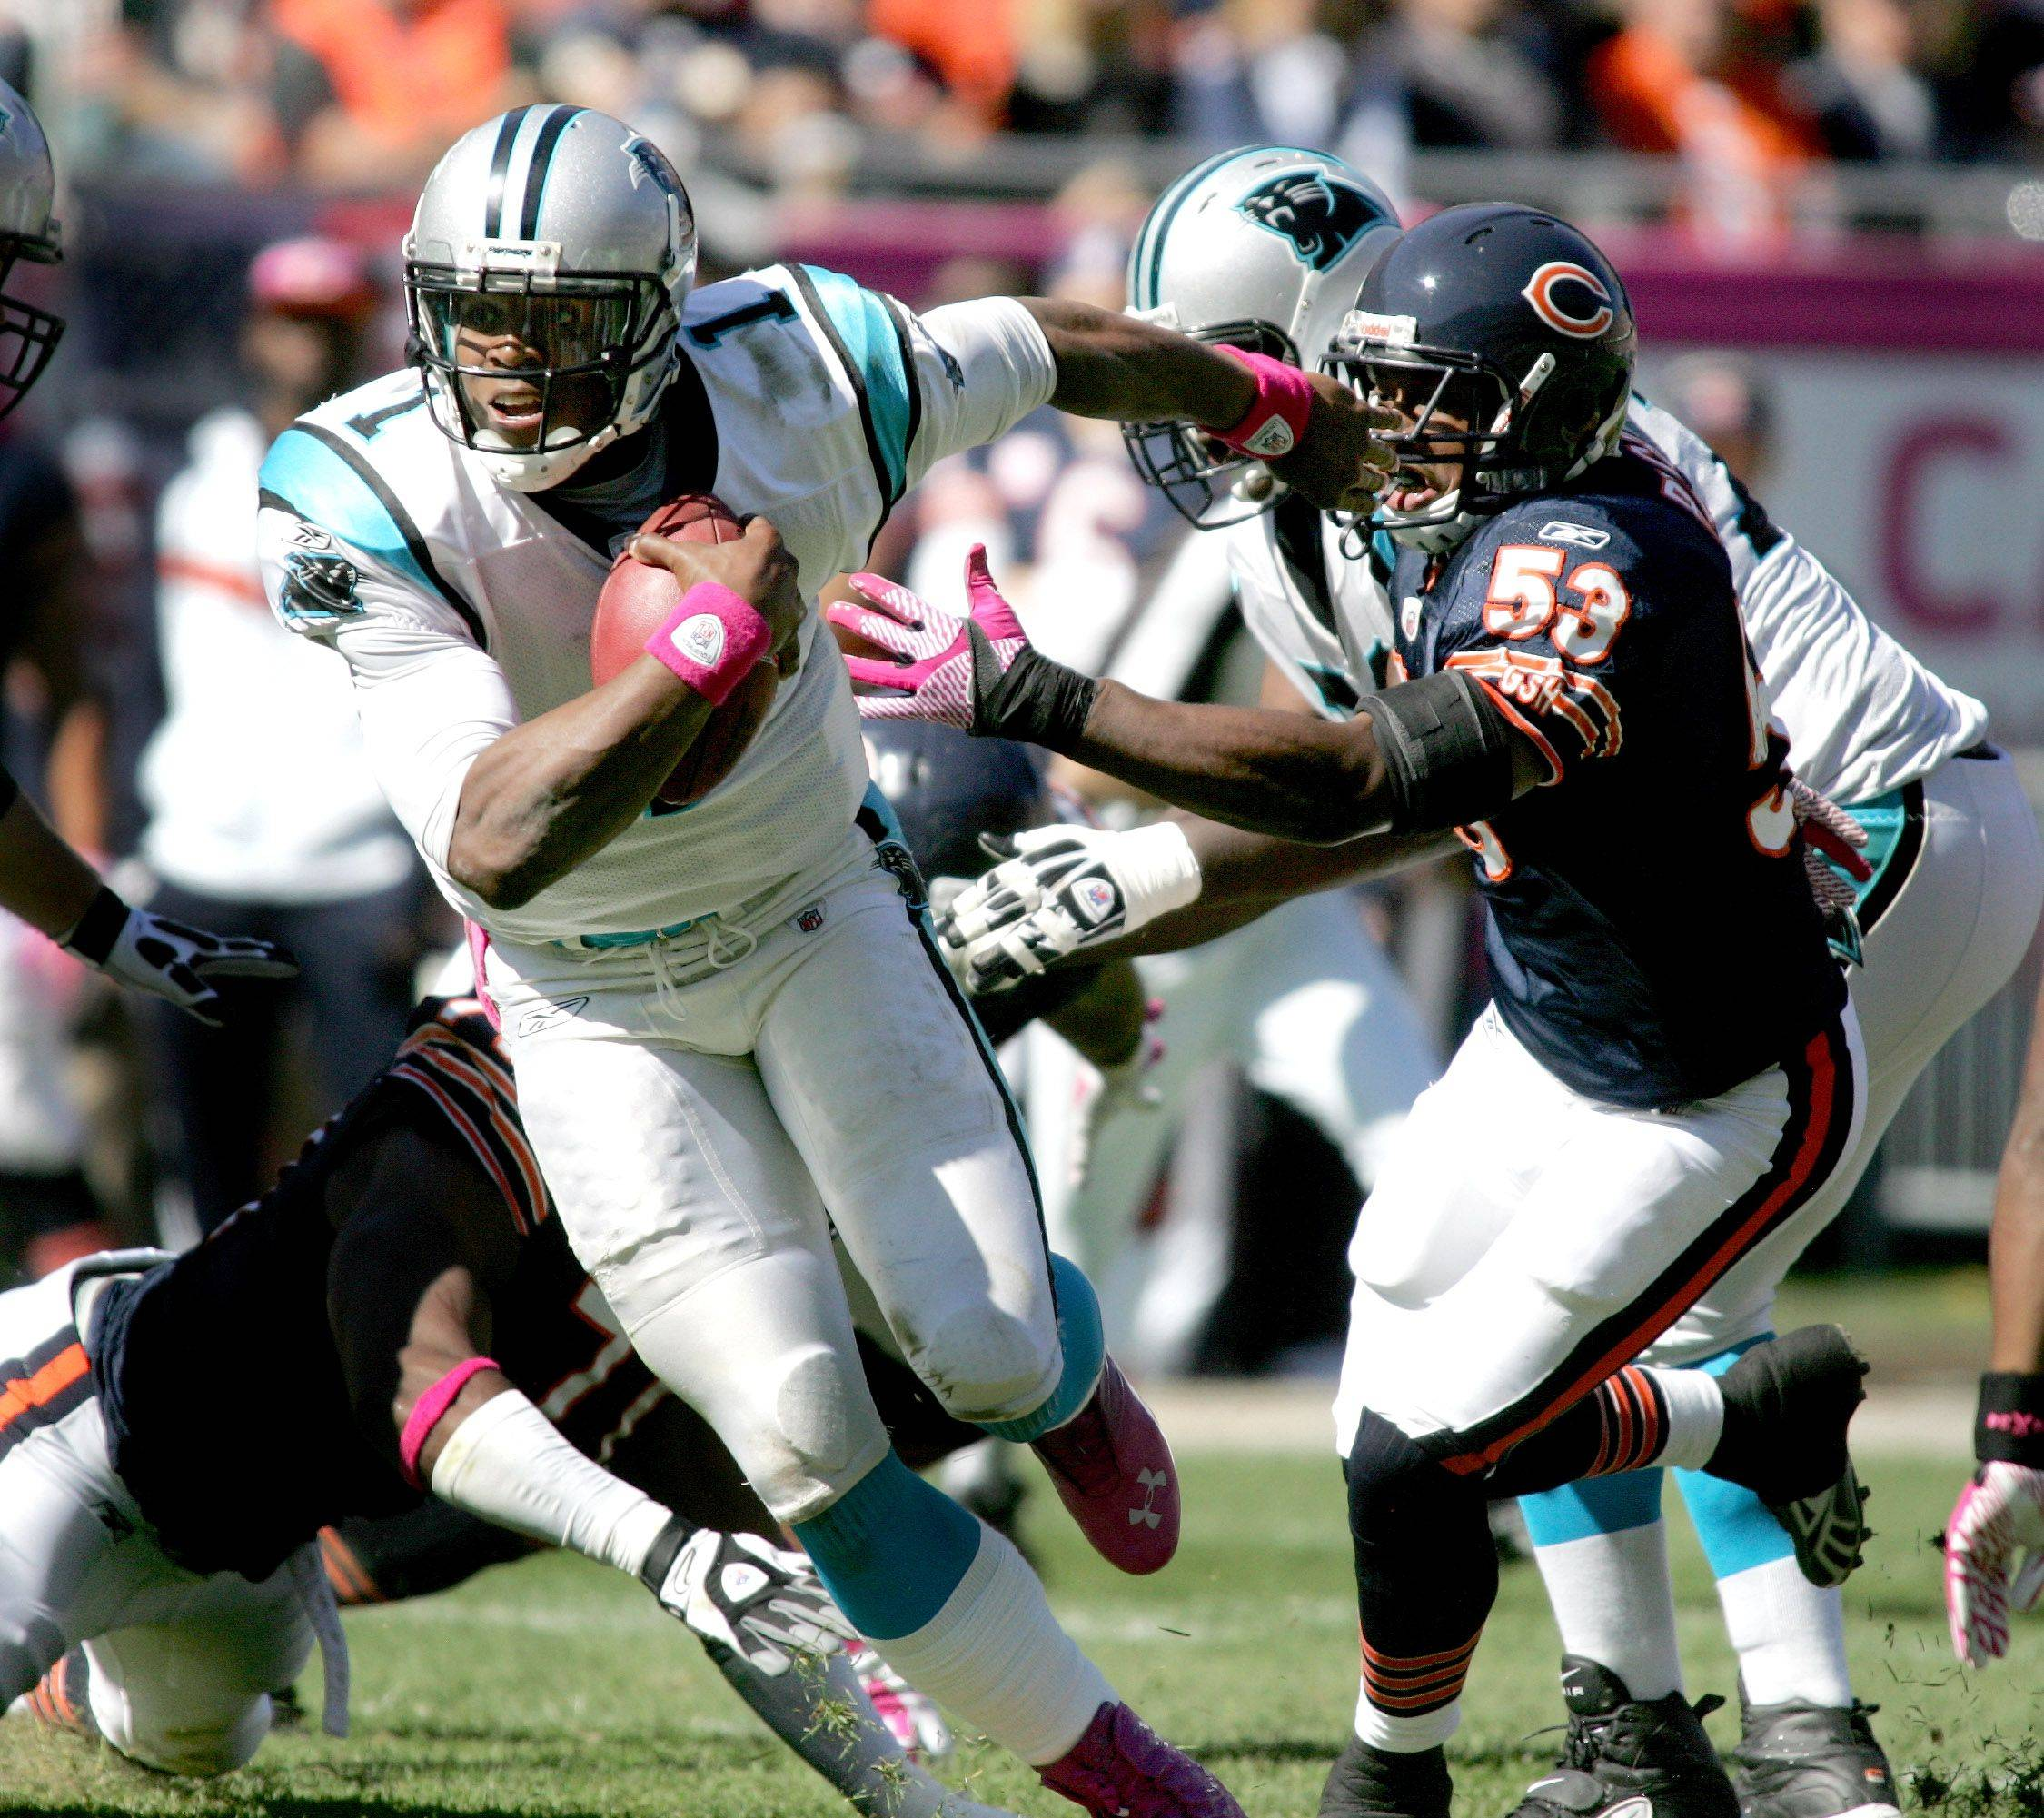 Carolina Panthers quarterback Cam Newton fends off Nick Roach, right, of the Chicago Bears at Soldier Field on Sunday.